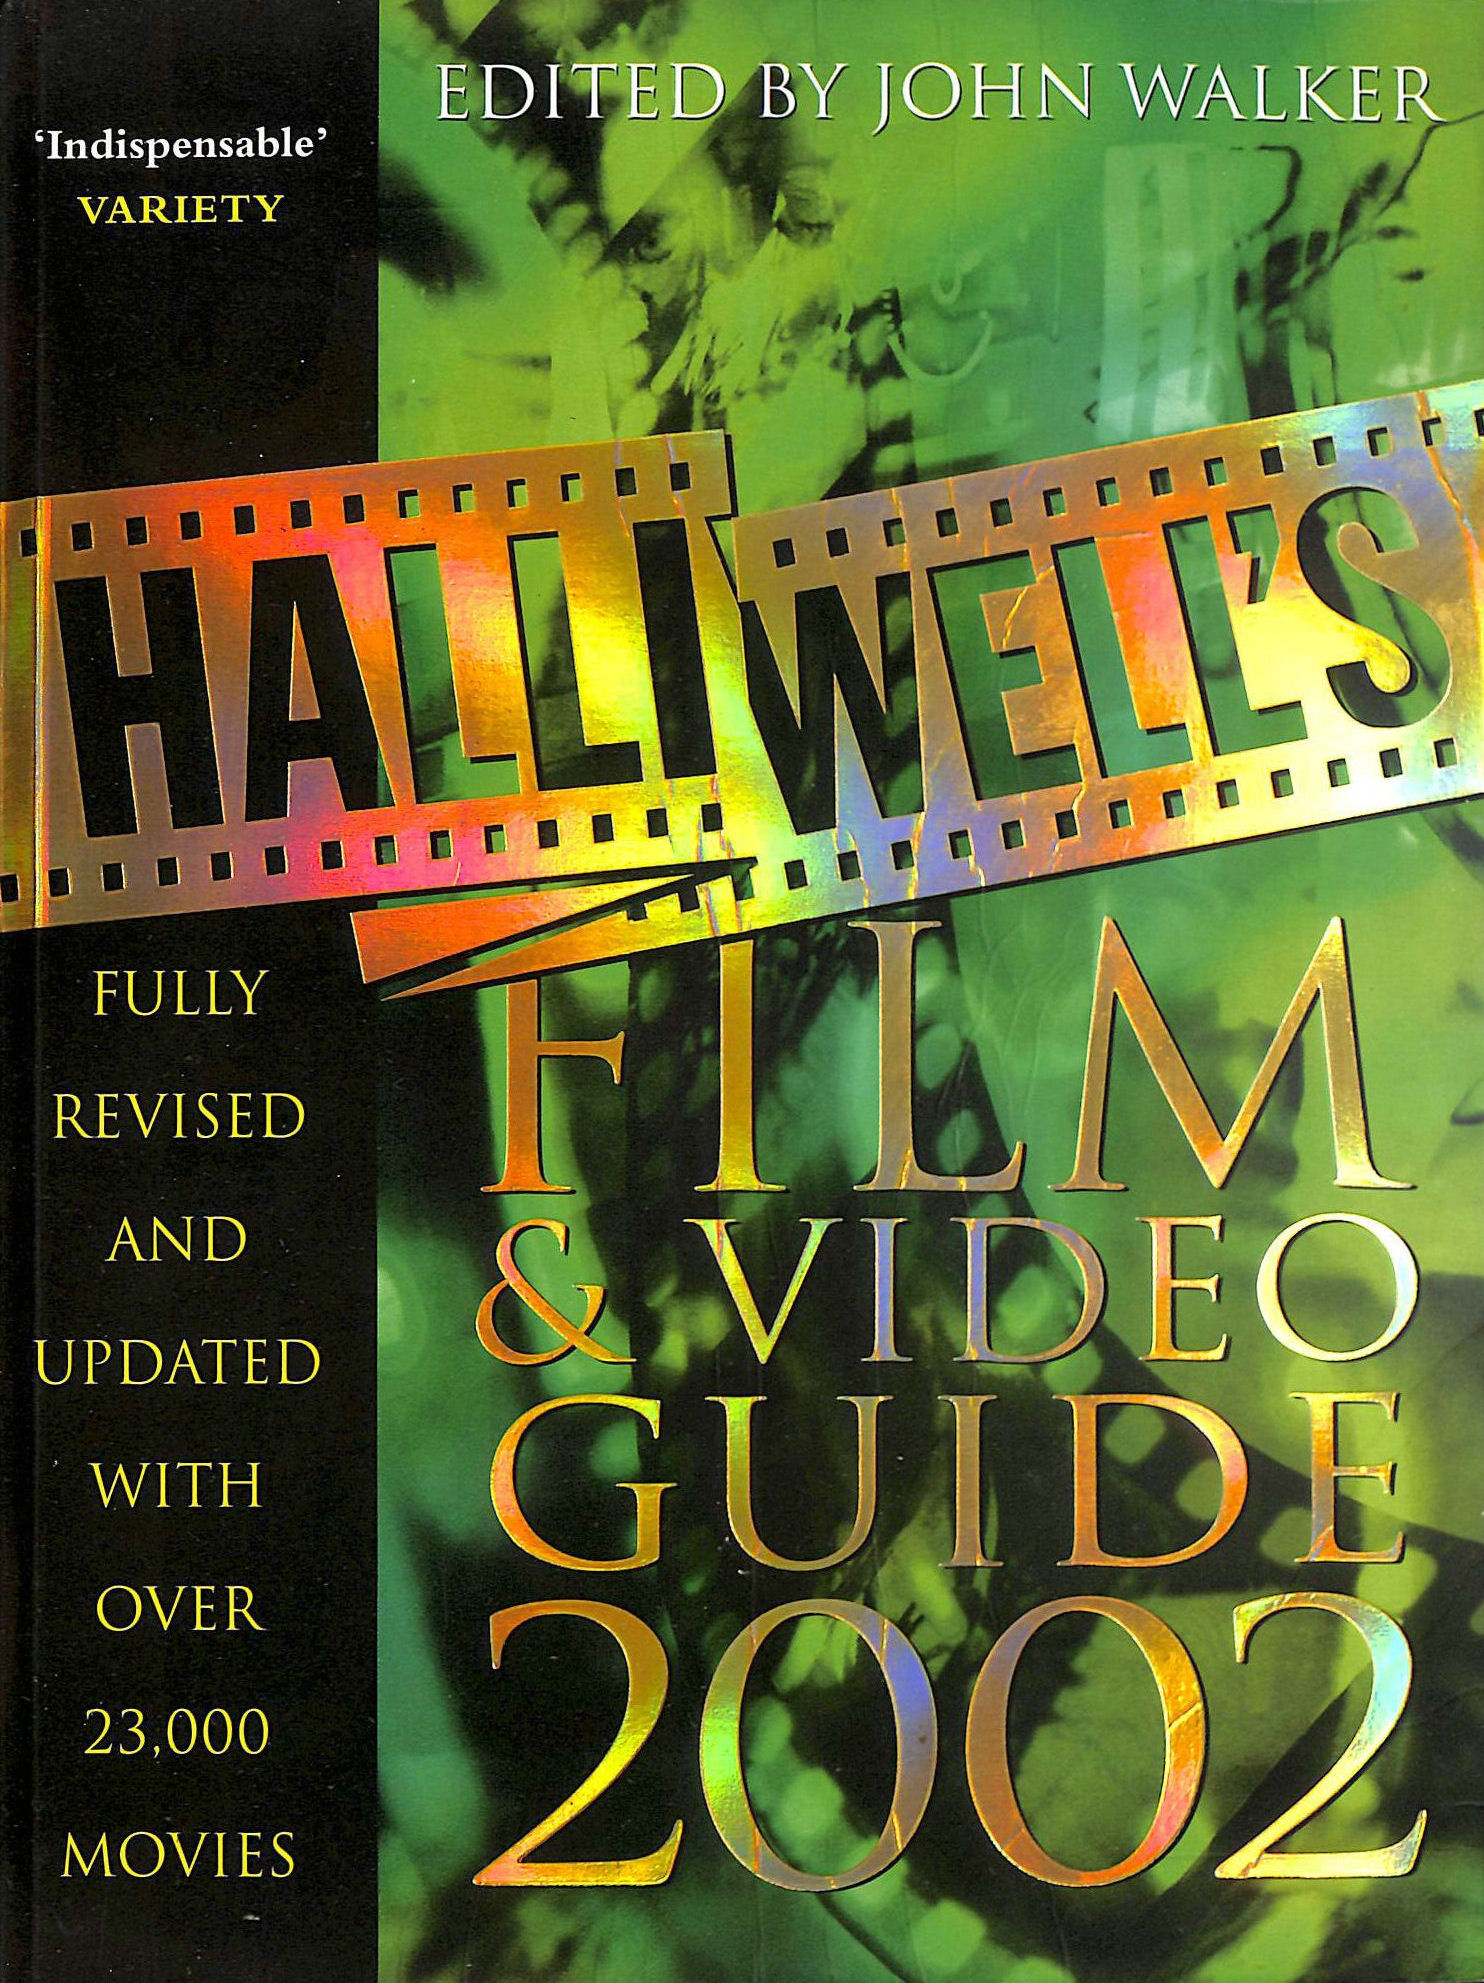 Image for Halliwell's Film and Video Guide 2002